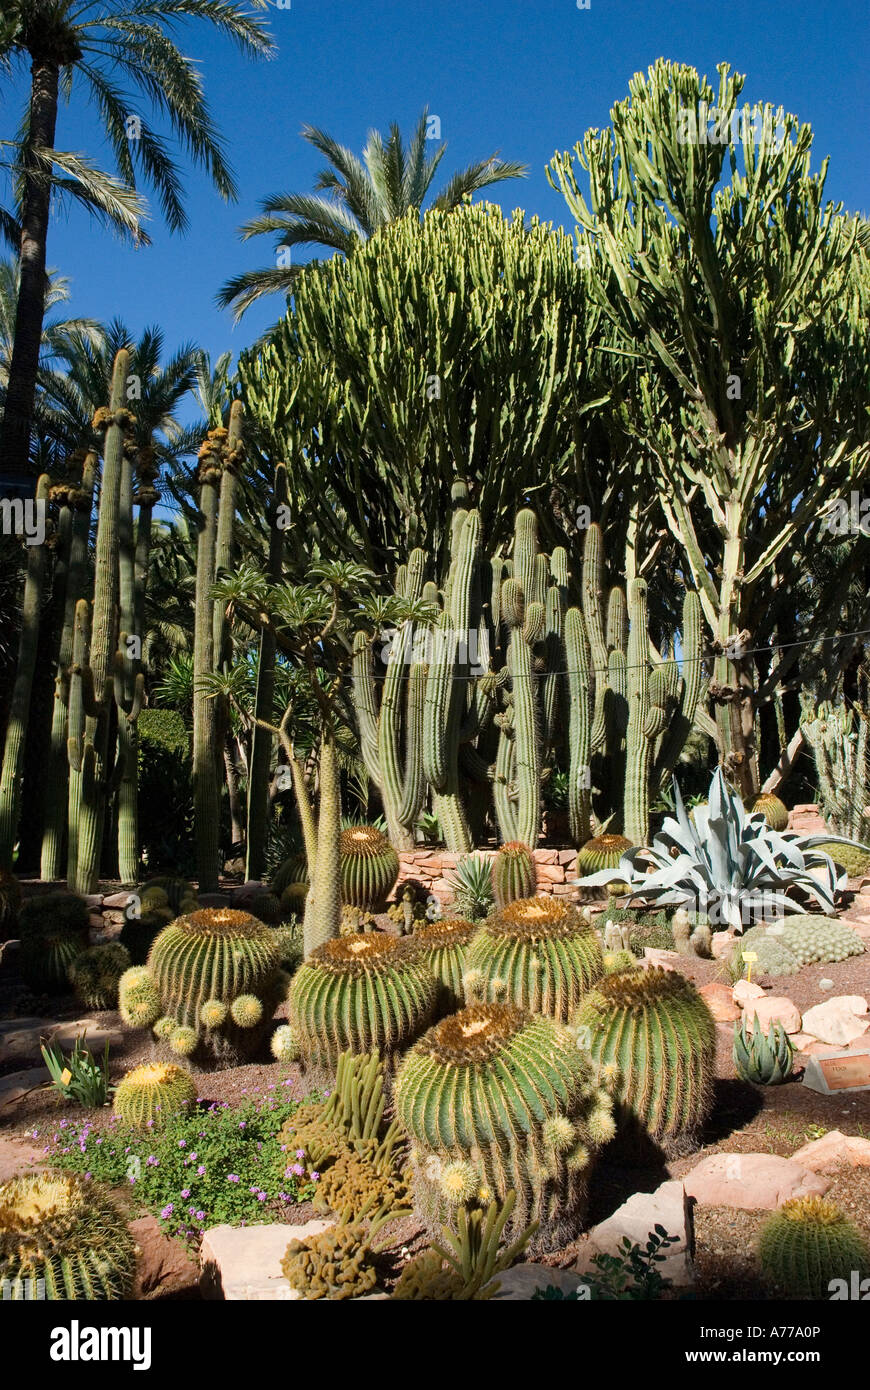 Priest Orchard in The Elx Palm Grove ELCHE Spain - Stock Image